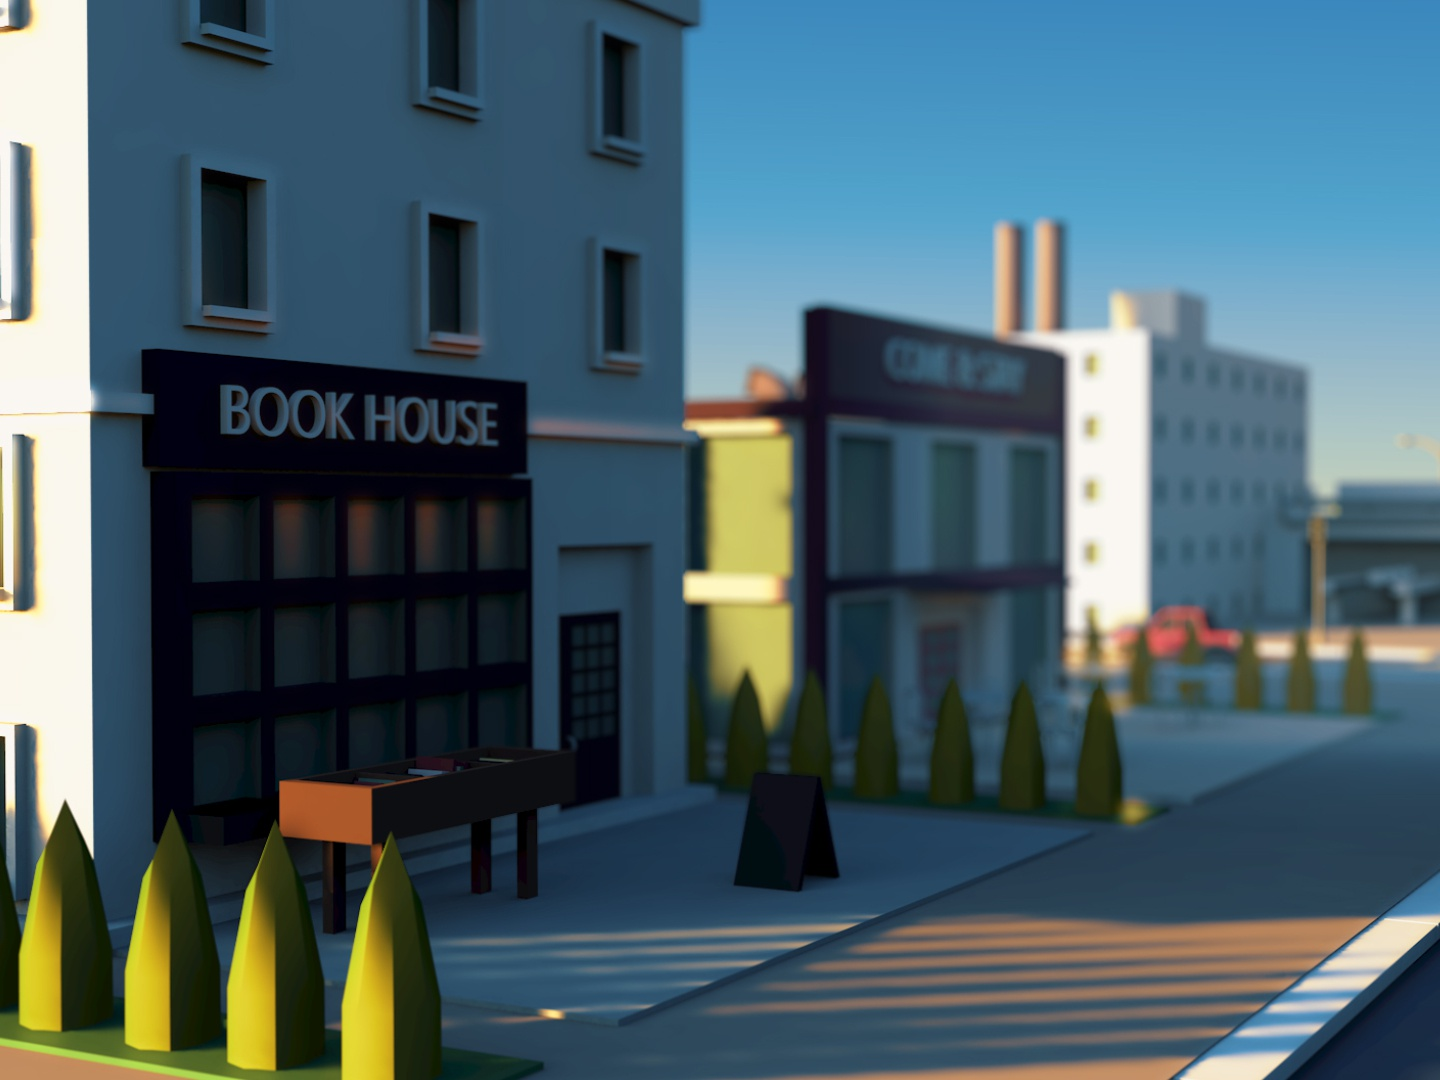 Book House sun render isometrictown design town city isometric cinema4d illustration c4d 3d